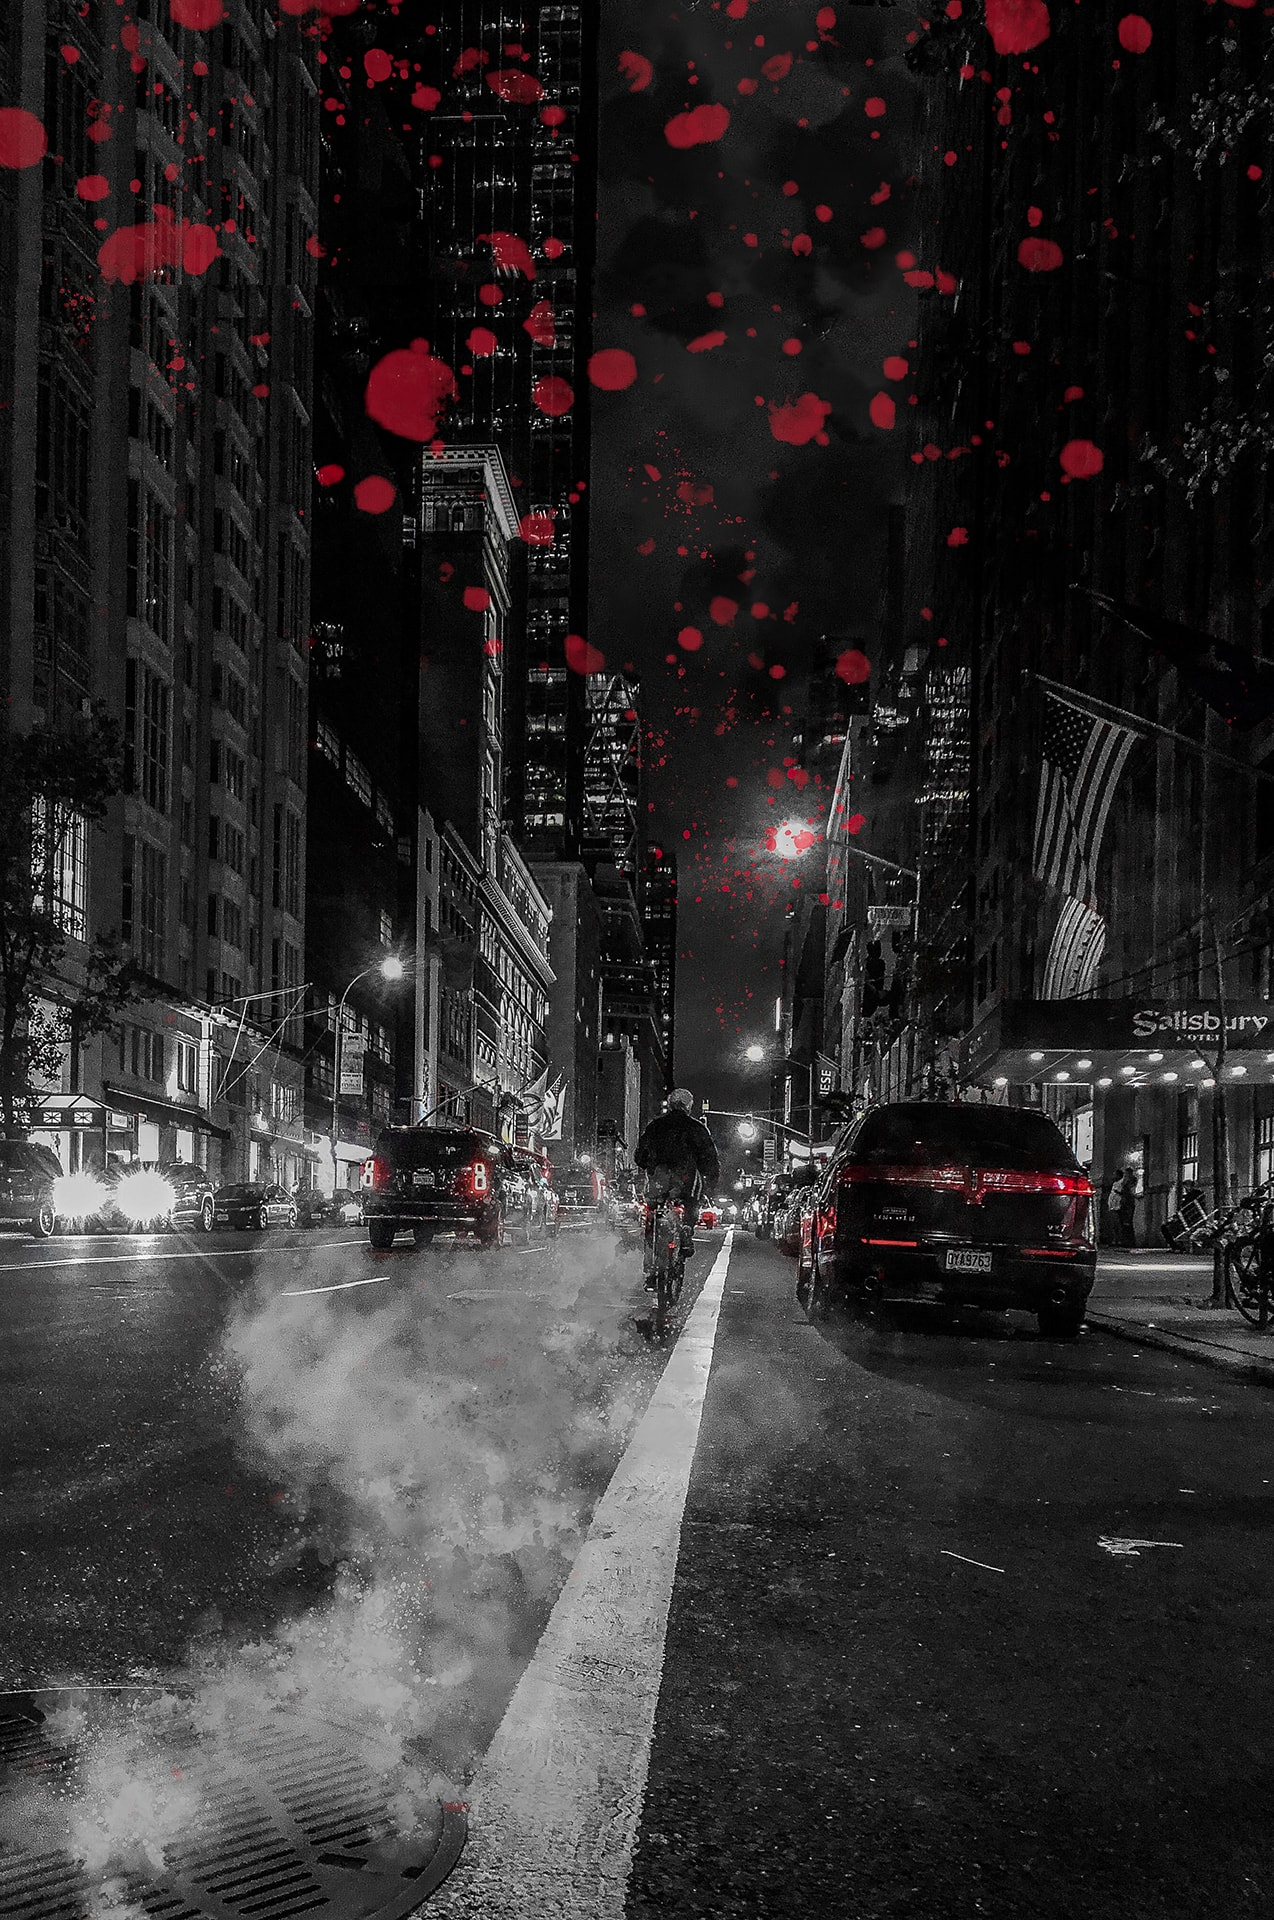 Red - In a New york minute